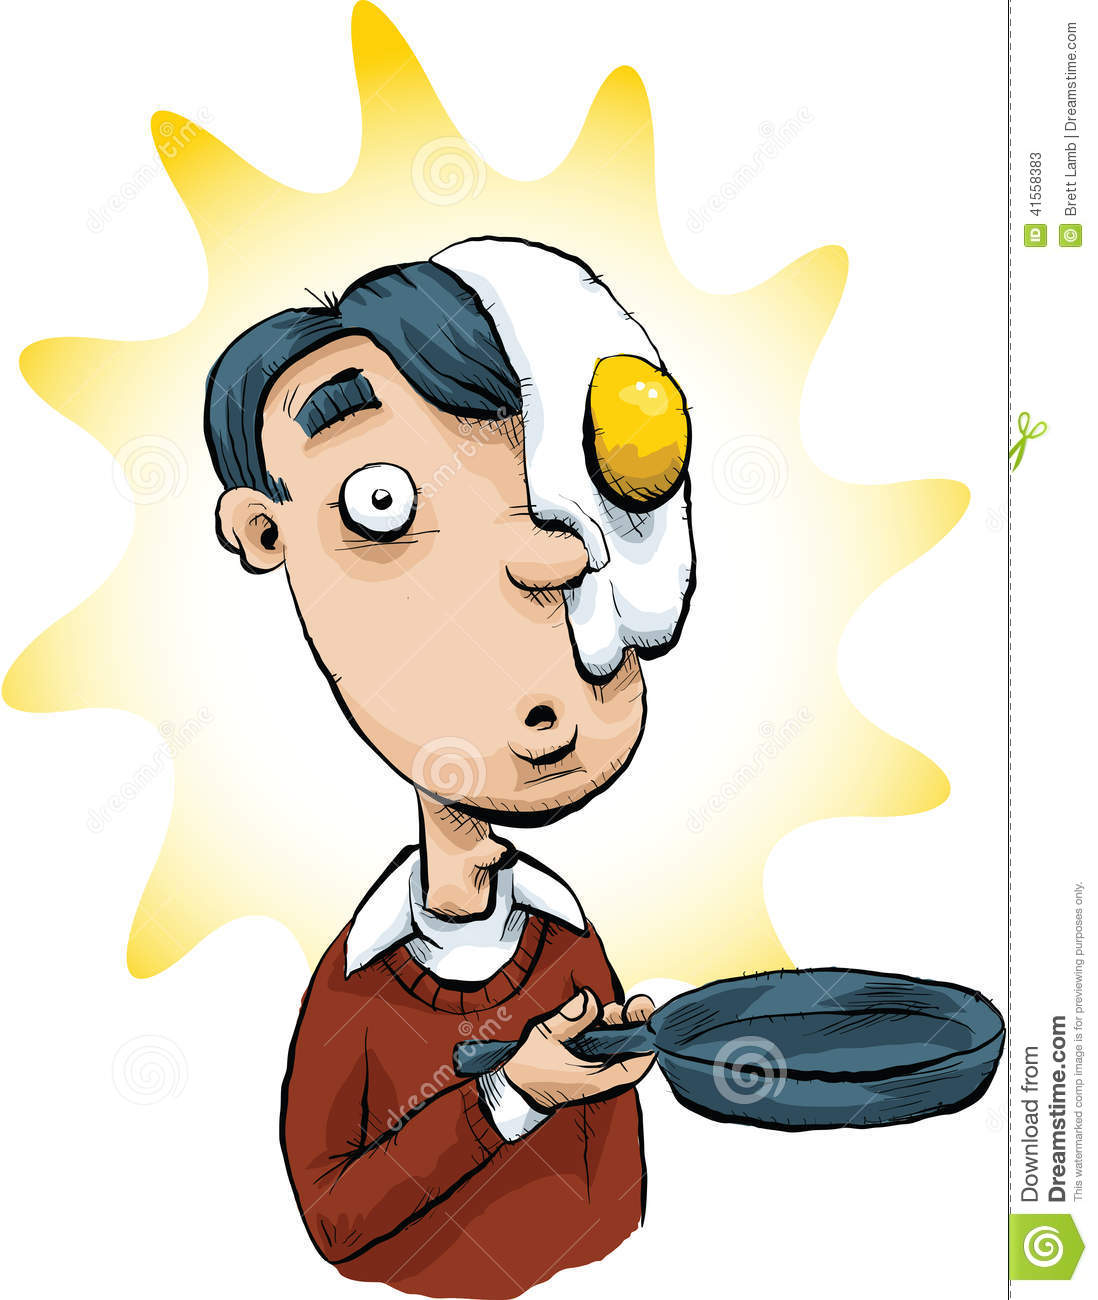 Image result for Cartoon egg on your face